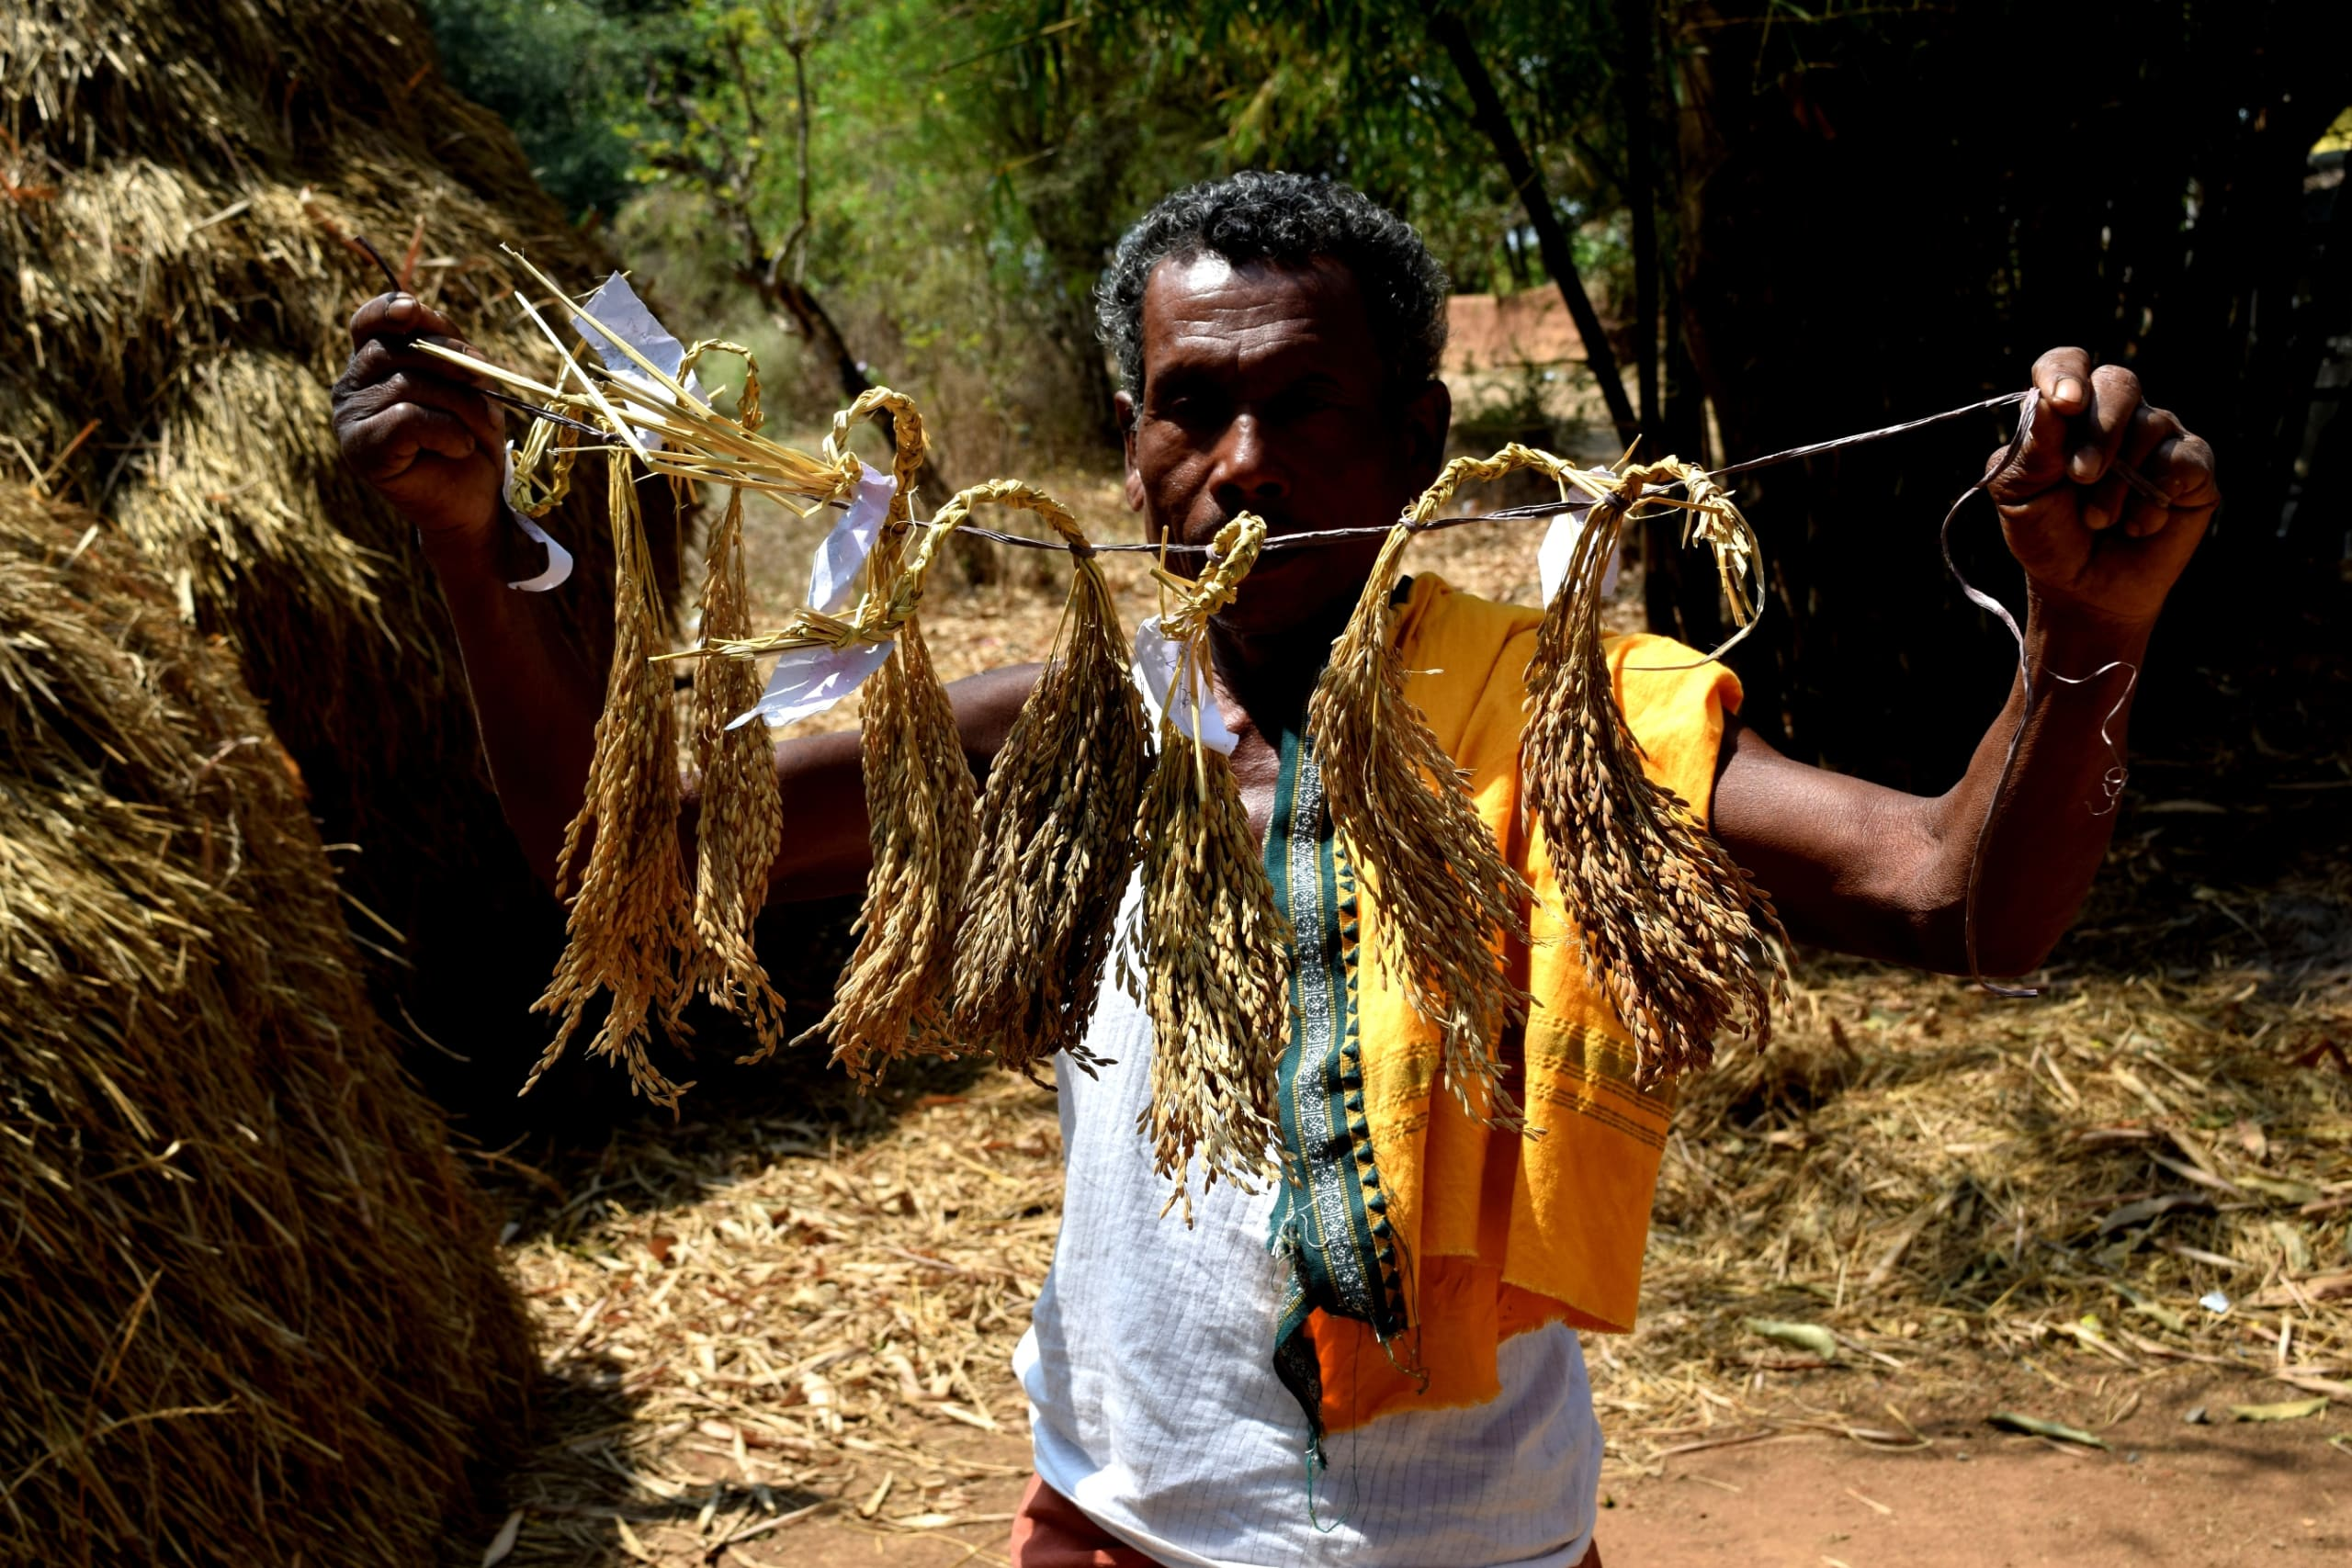 Purushottam Gadaba of Kadamguda village shows the indigenous rice seeds he grows in his fields. Photo: Basudev Mahapatra